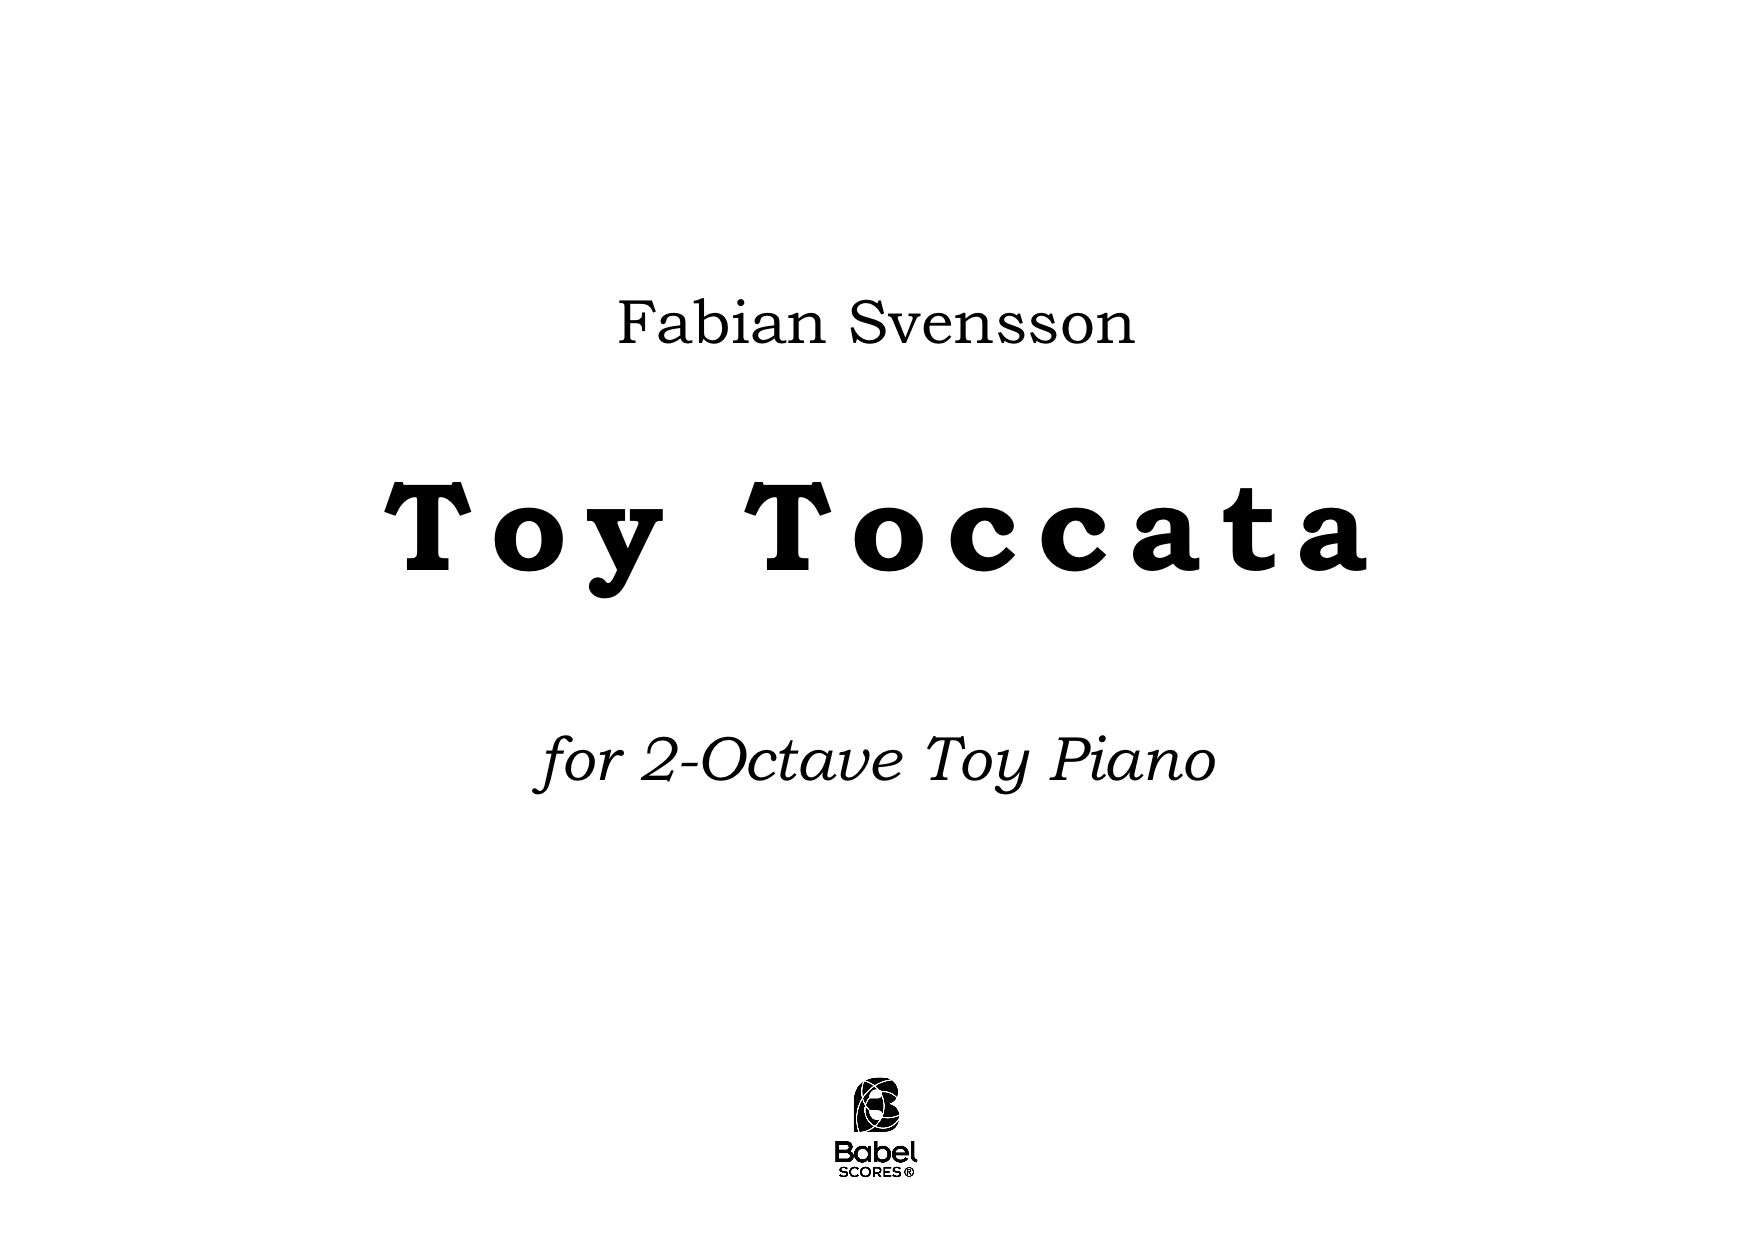 Toy Toccata A4 z 3 1 265